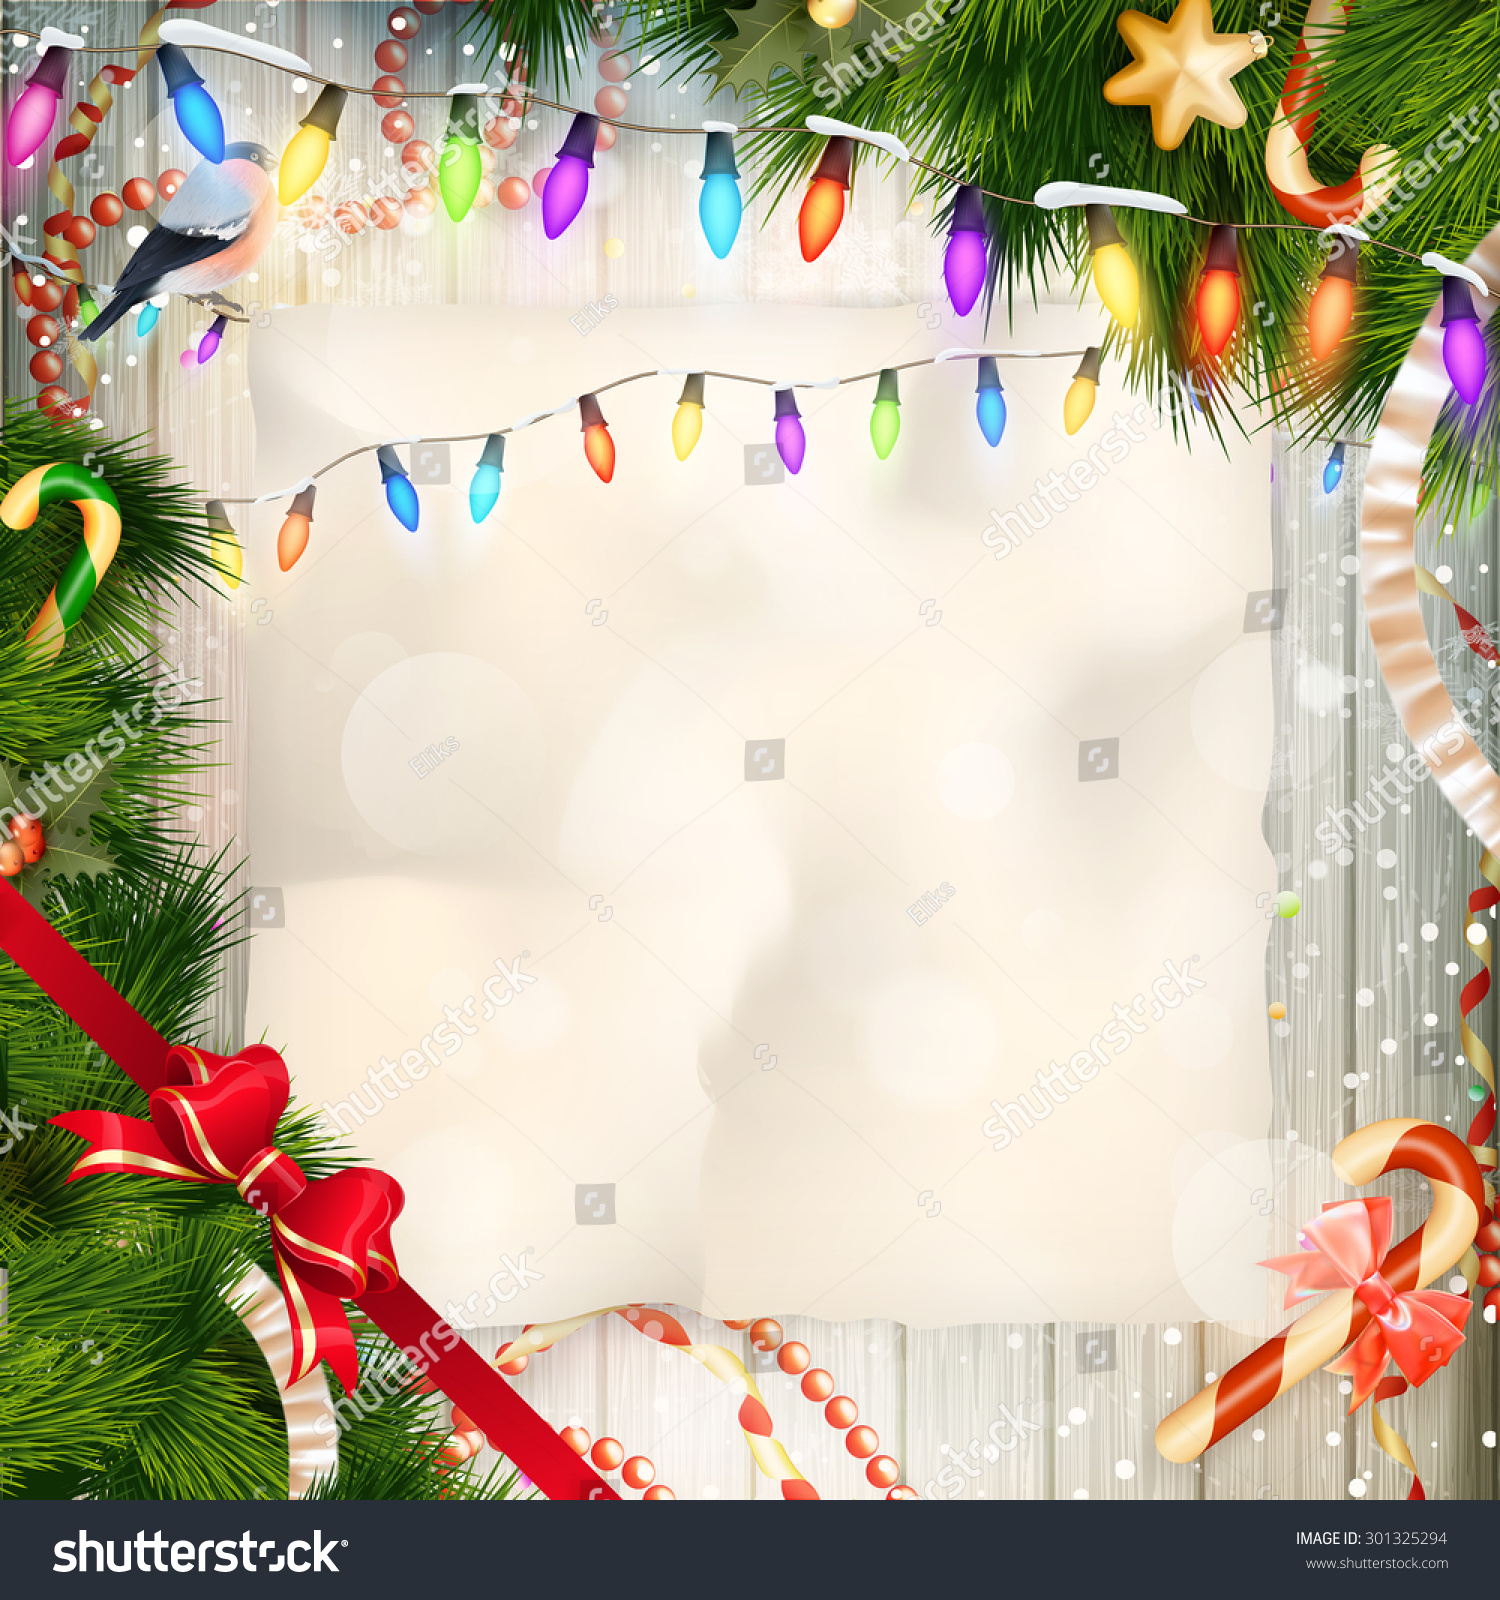 Merry christmas card copy space greeting stock vector 301325294 merry christmas card with copy space for greeting on wooden fence texture eps 10 vector kristyandbryce Choice Image